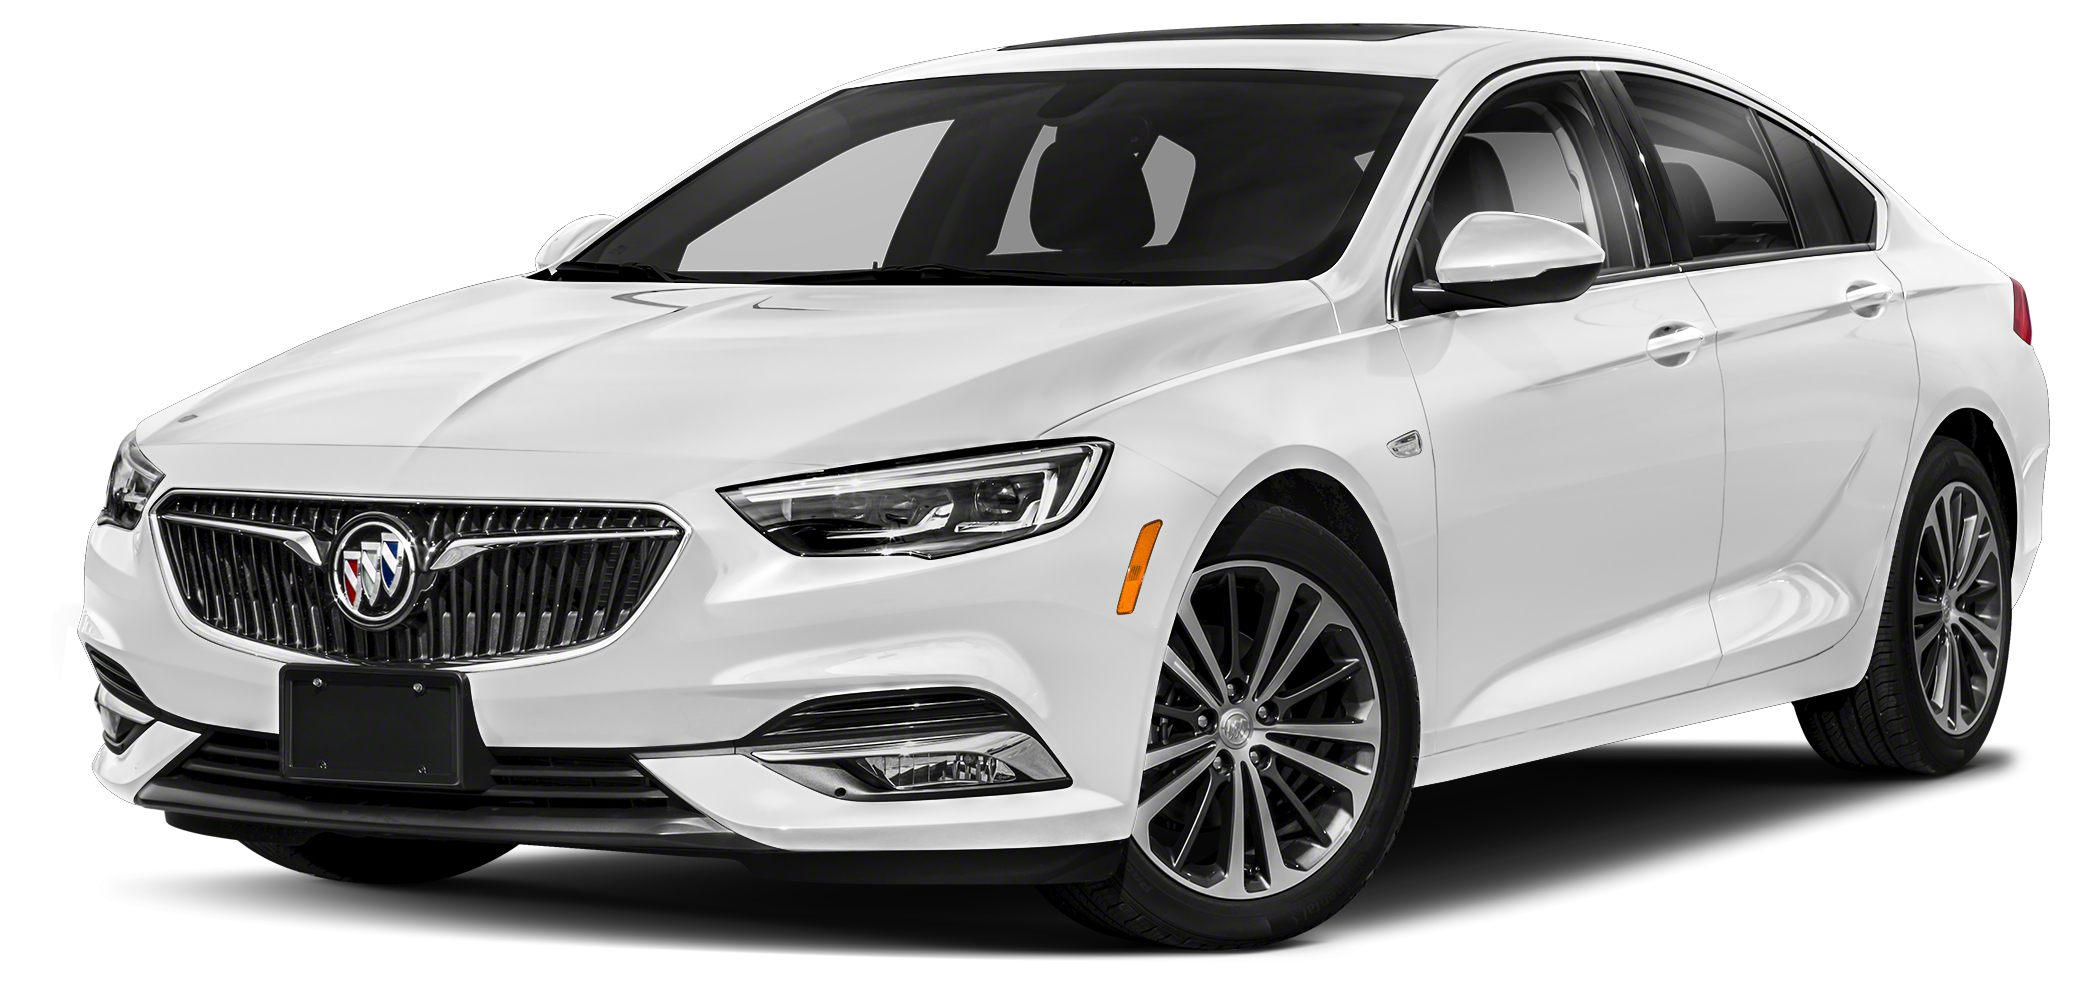 2018 Buick Regal Sportback Preferred New Arrival Optional equipment includes Driver Confidence